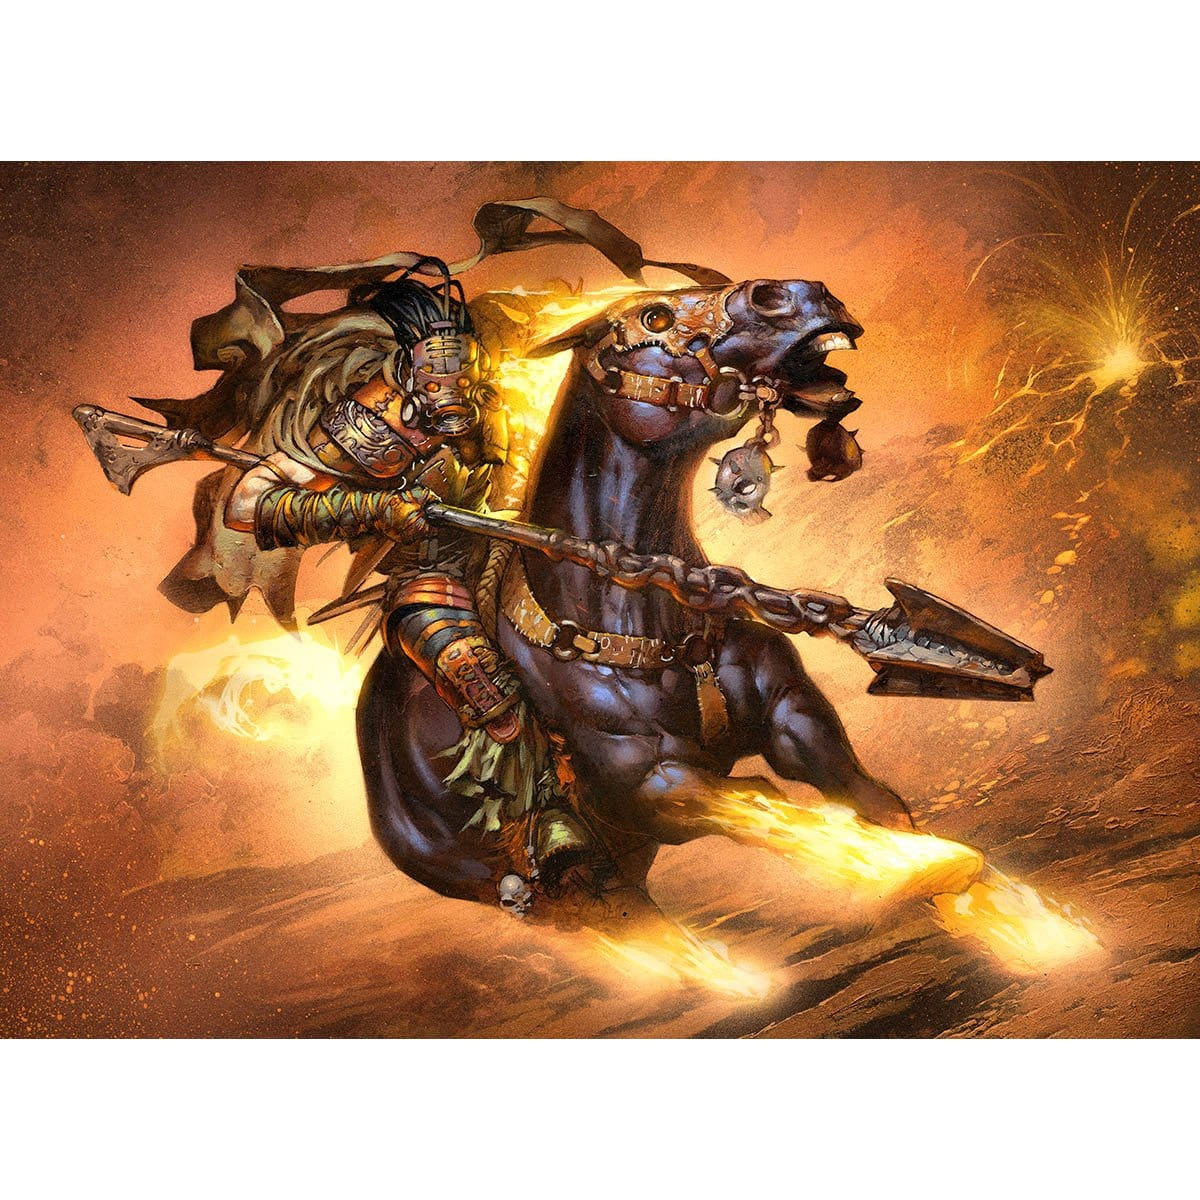 Bogardan Lancer Print - Print - Original Magic Art - Accessories for Magic the Gathering and other card games